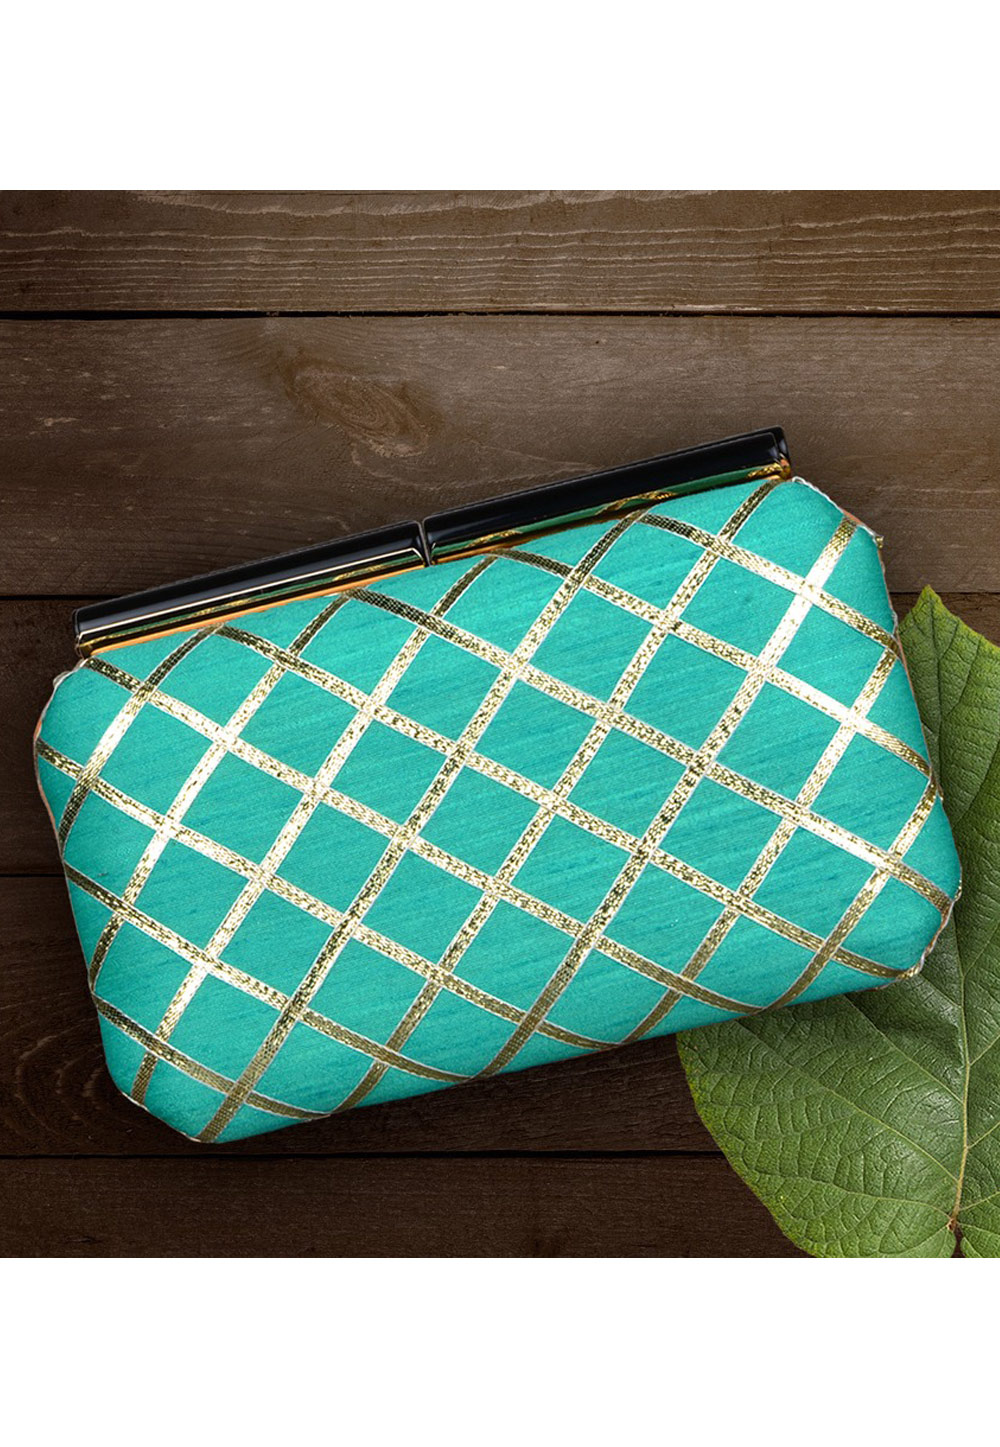 Aqua Synthetic Embroidered Clutch 177051